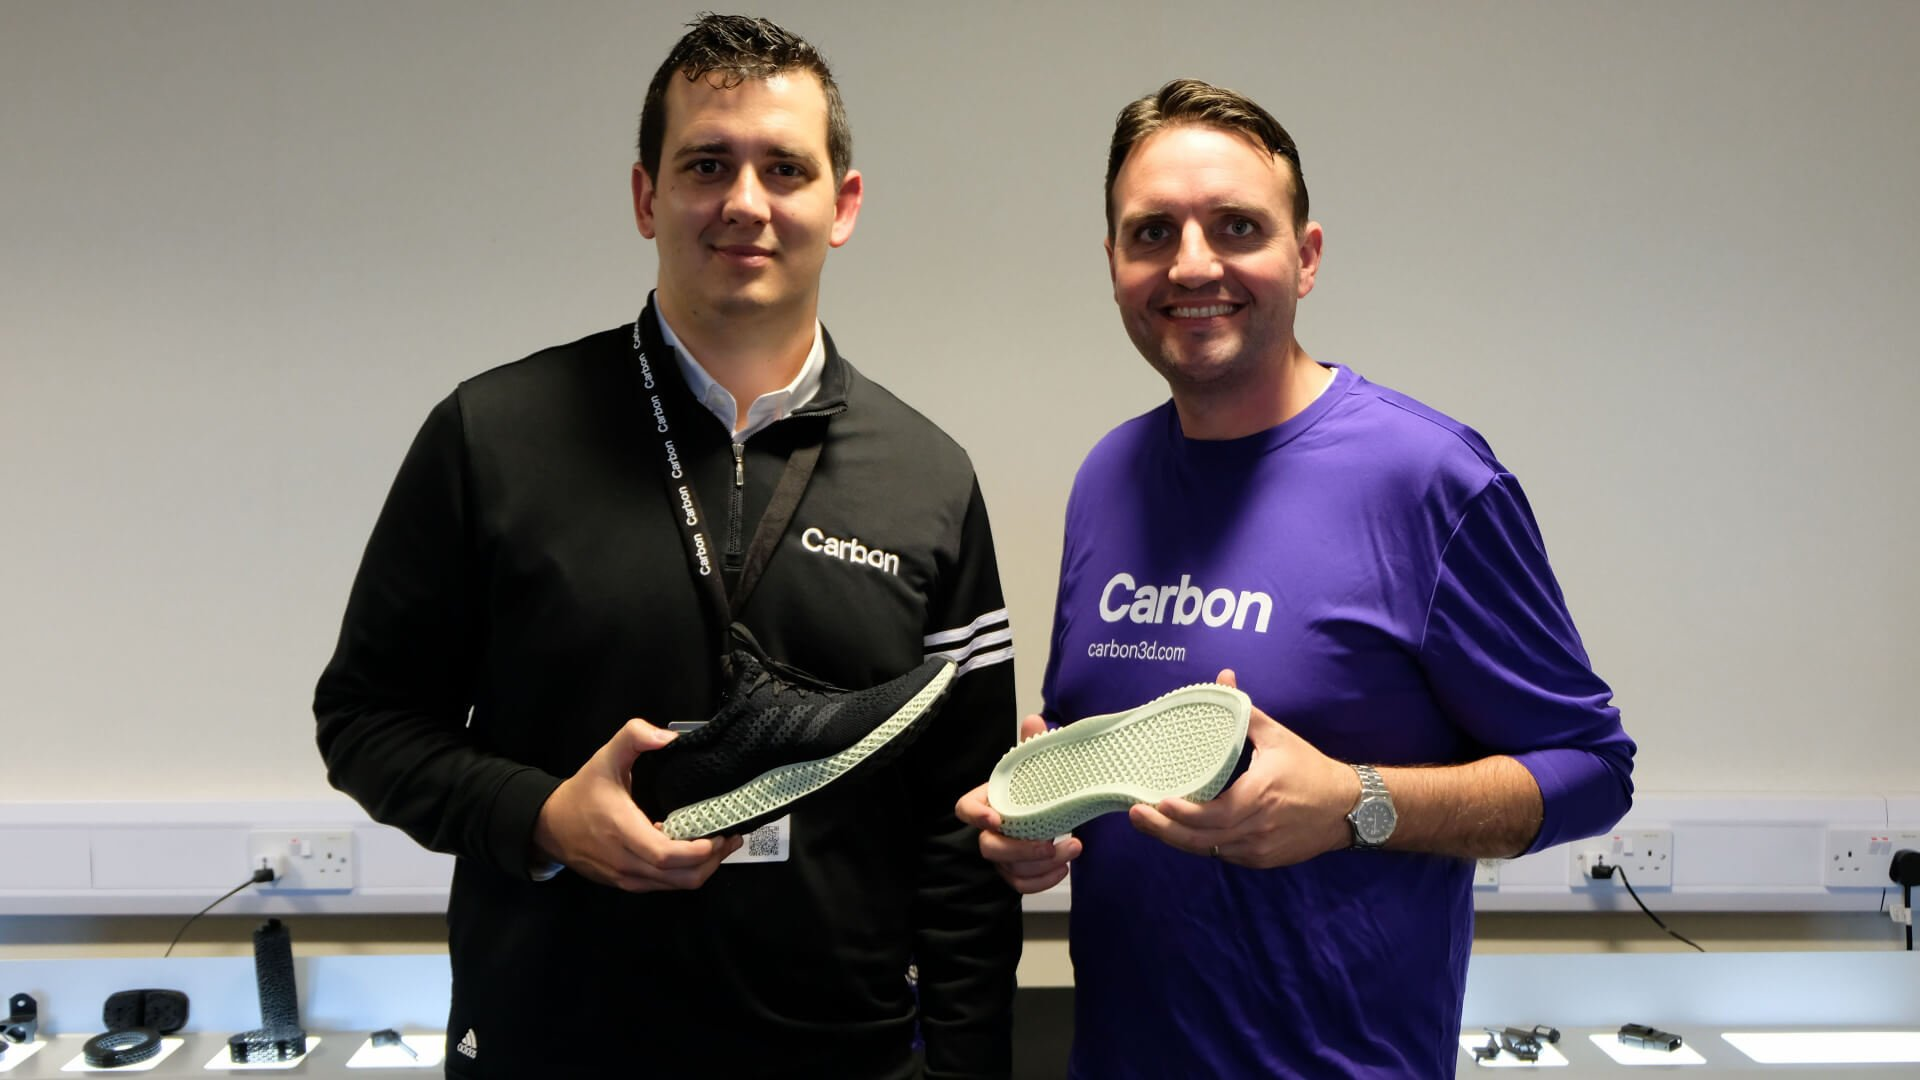 Carbon Talks Adidas Collaboration and Bringing 3D Printing to the Serial Production Stage | All3DP